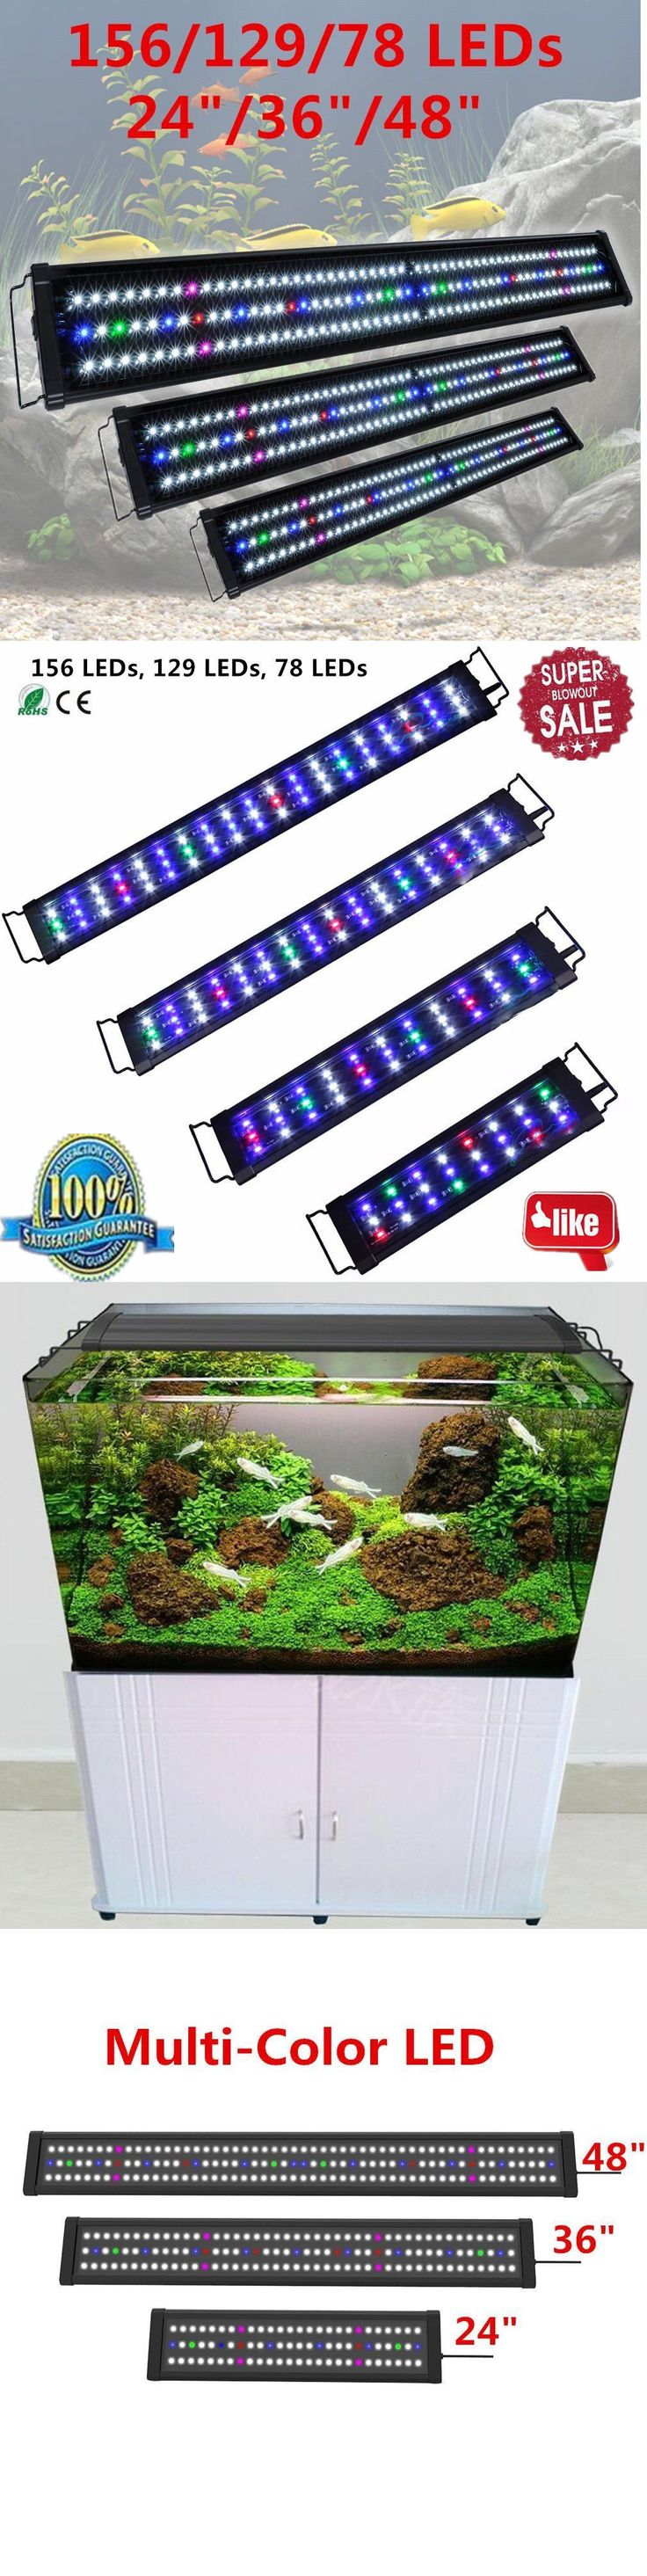 Fish tank lights for sale - Lighting And Bulbs 46314 0 5w 24 36 48 Multi Color Led